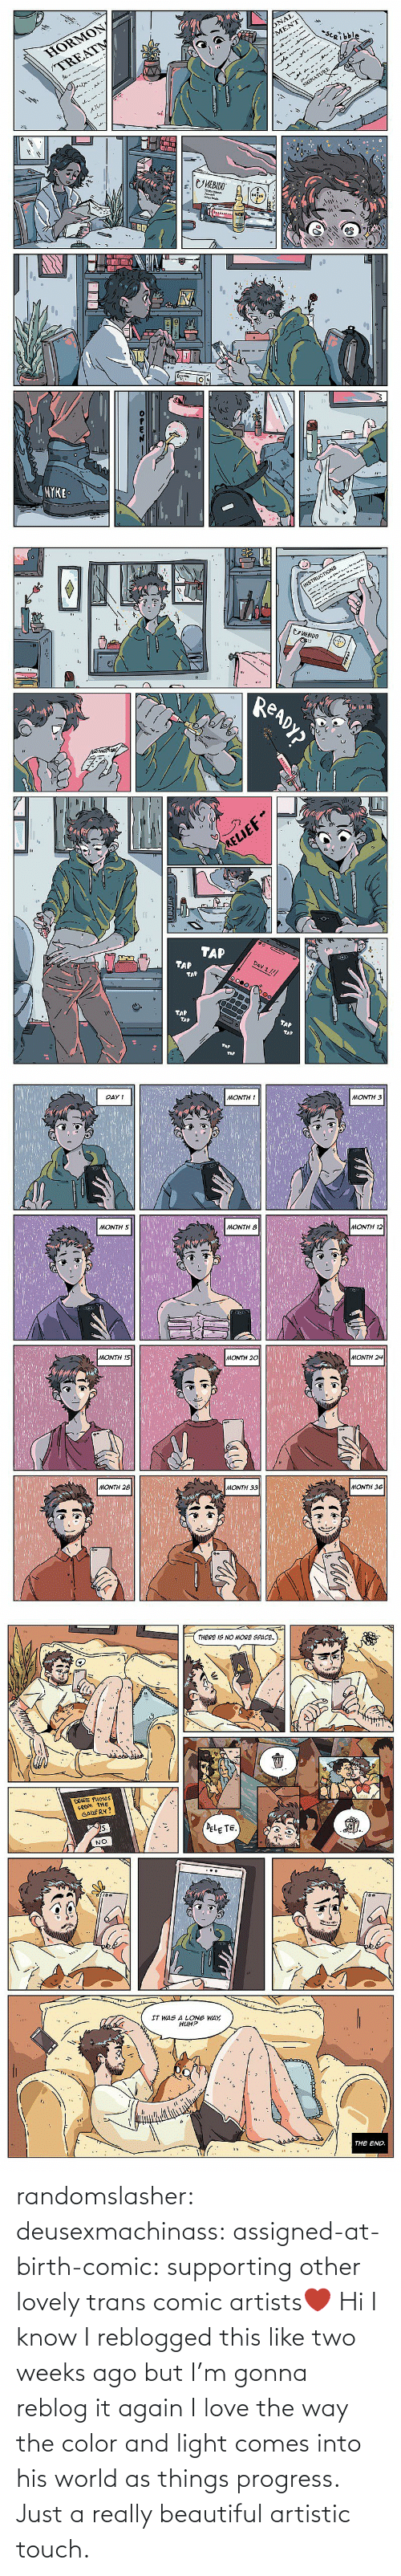 Supporting: randomslasher: deusexmachinass:  assigned-at-birth-comic: supporting other lovely trans comic artists❤  Hi I know I reblogged this like two weeks ago but I'm gonna reblog it again  I love the way the color and light comes into his world as things progress. Just a really beautiful artistic touch.